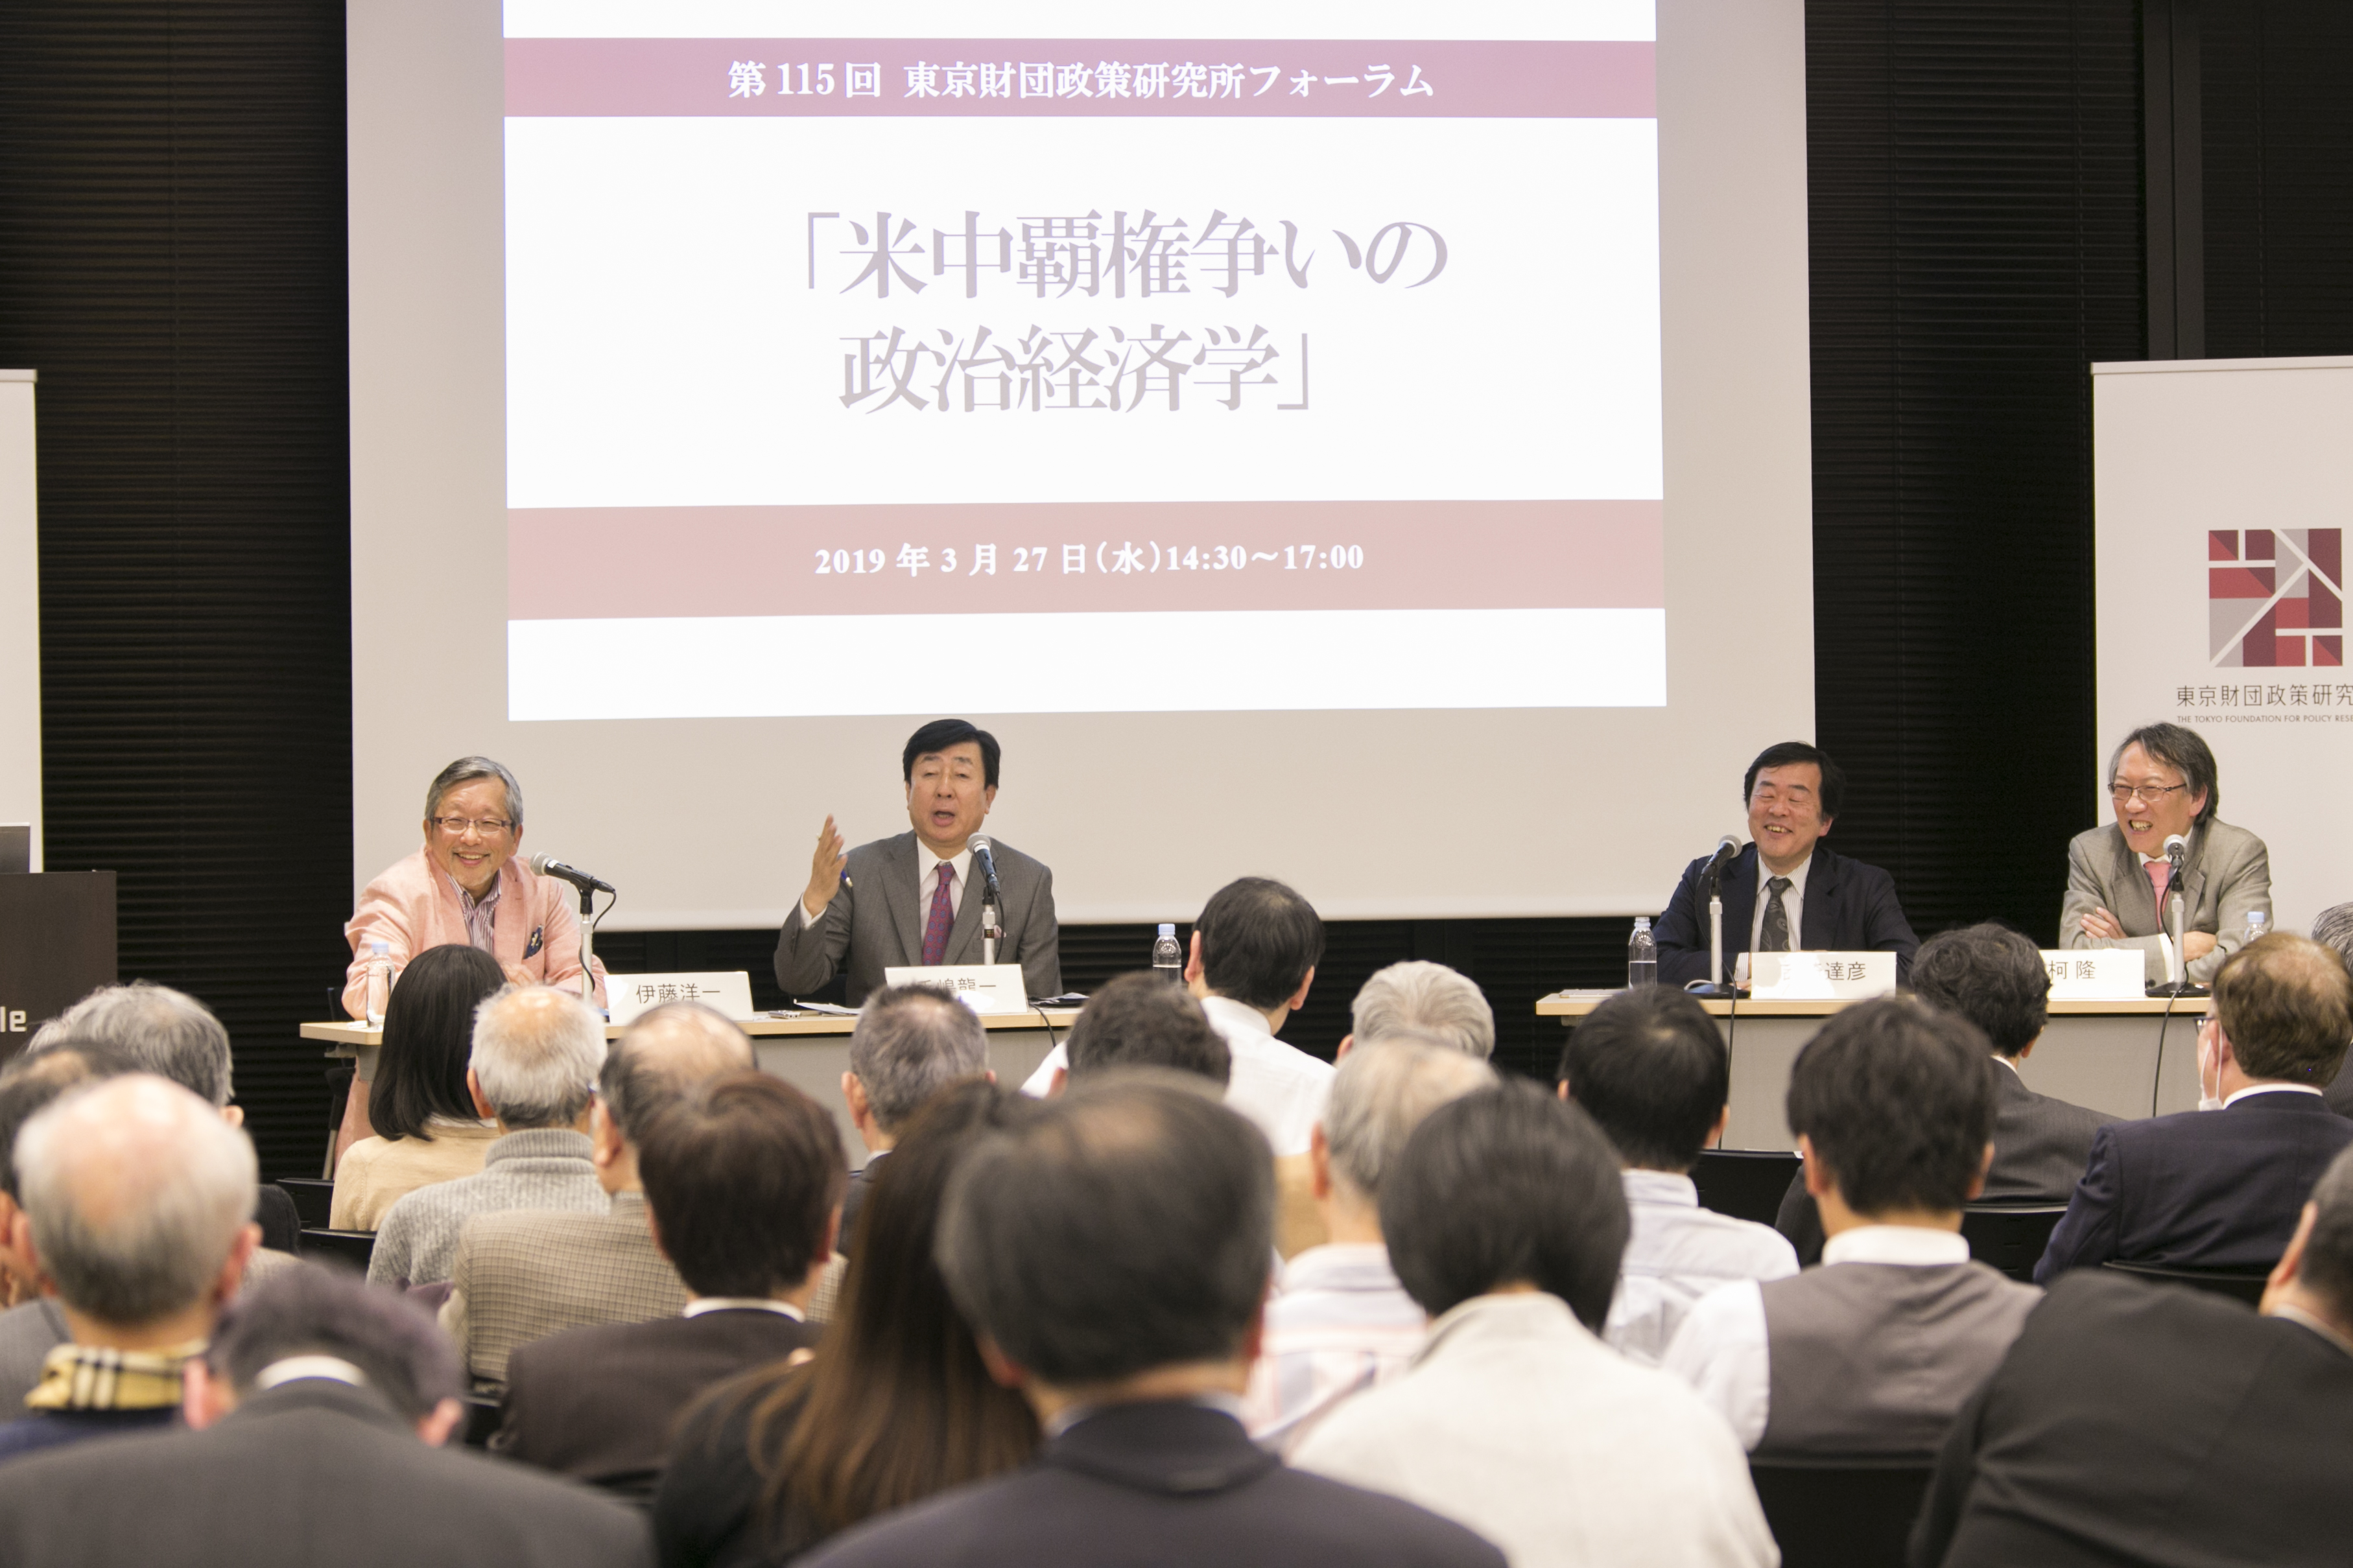 Experts Examine Escalating US-China Rivalry at 115th Tokyo Foundation for Policy Research Forum